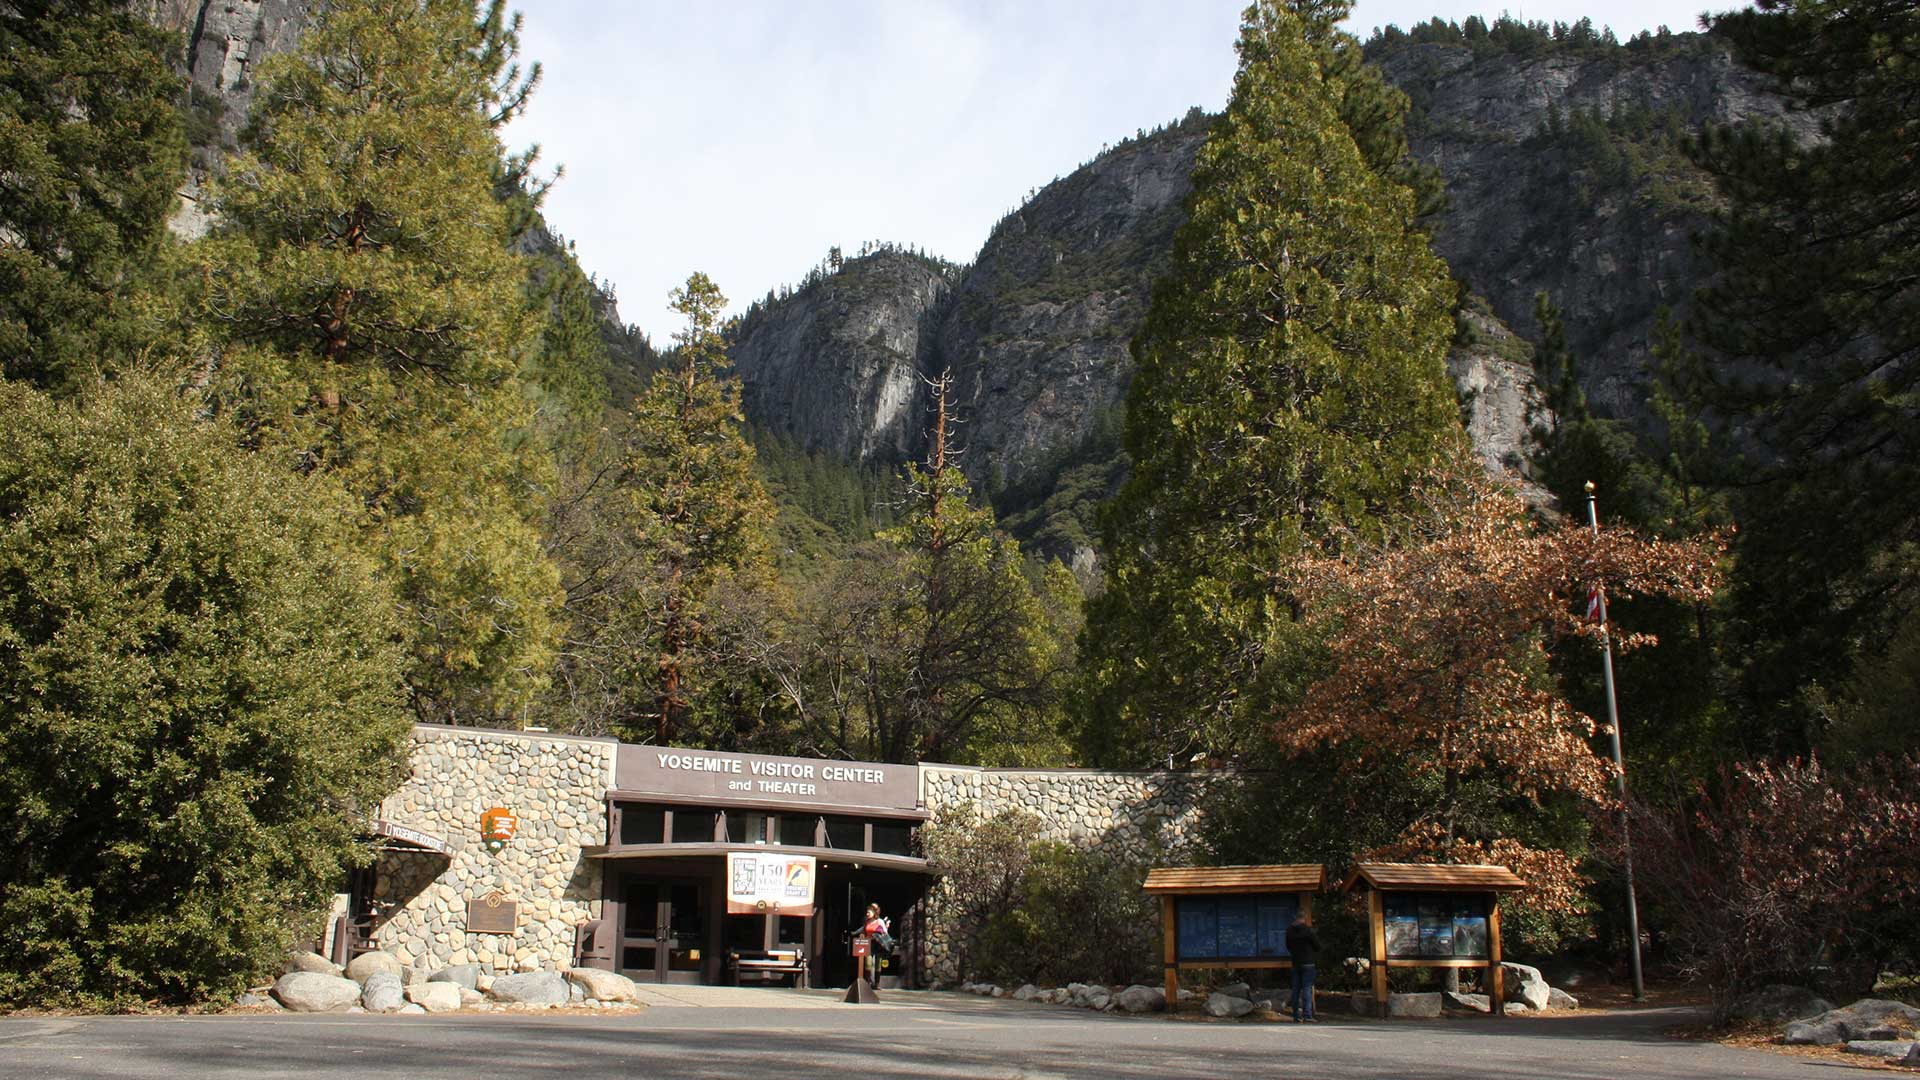 Interpretive signs in front of Yosemite Valley Visitor Center